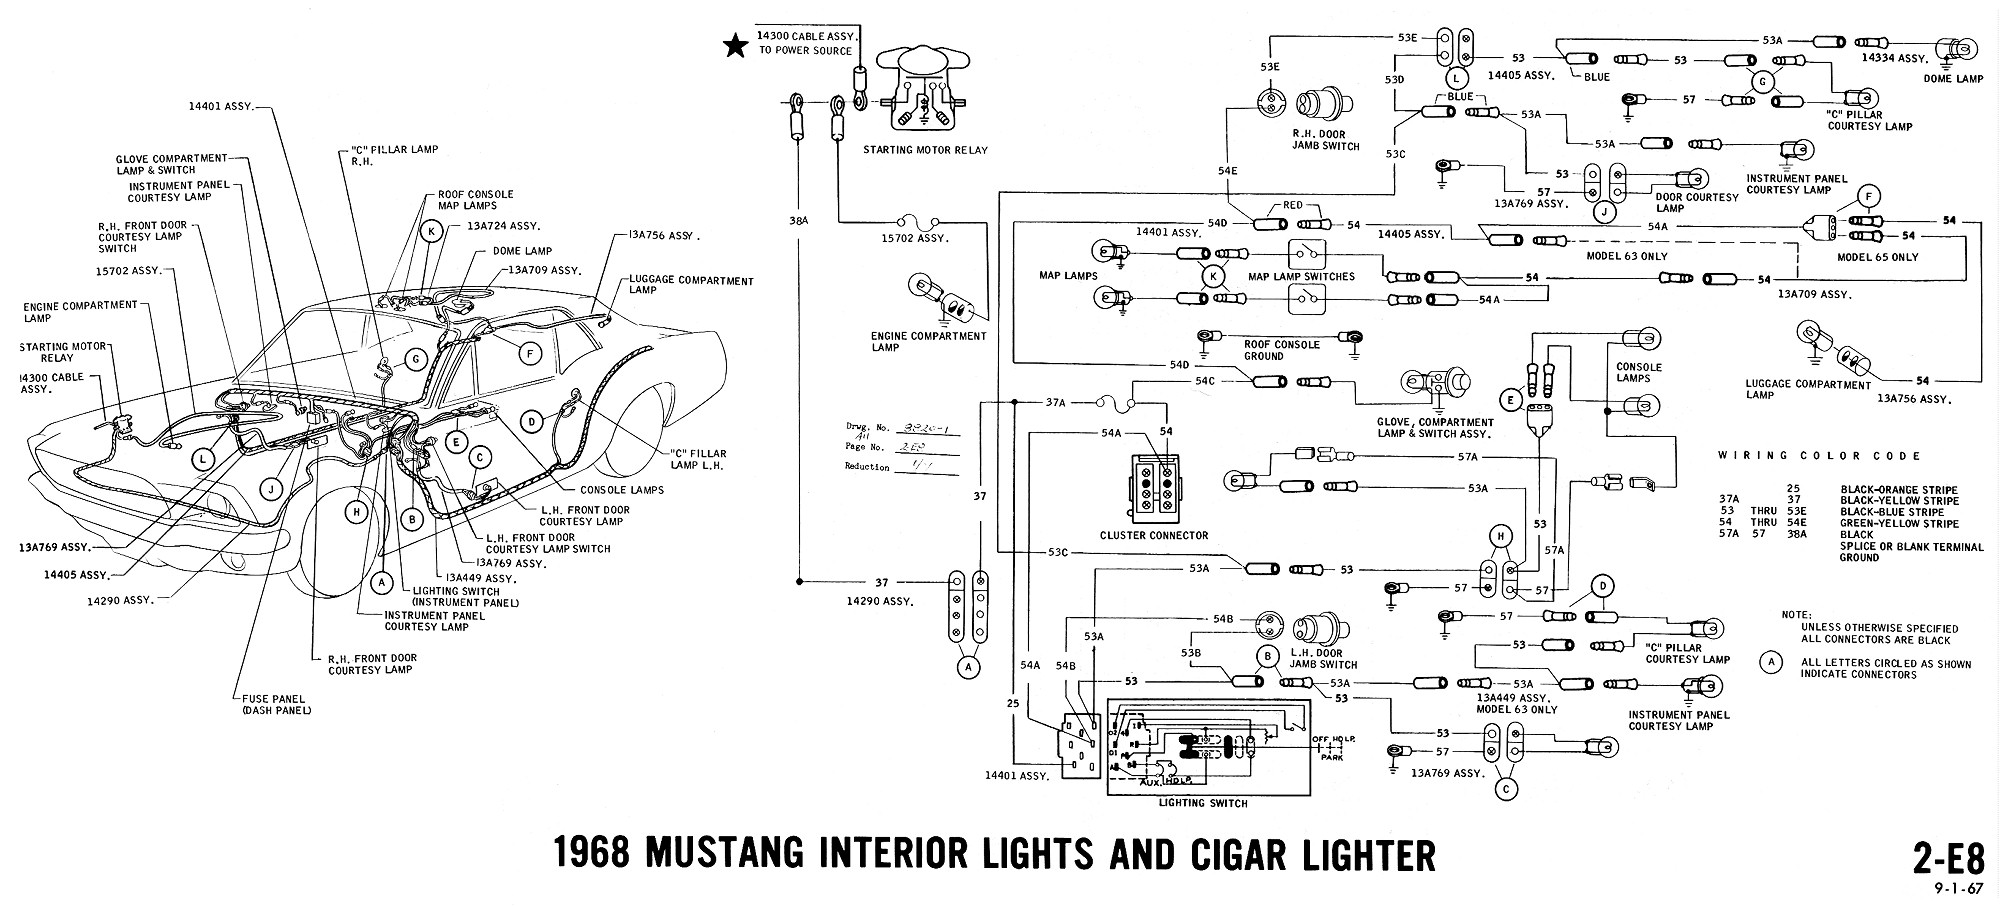 1965 Mustang Instrument Panel Wiring, 1965, Free Engine